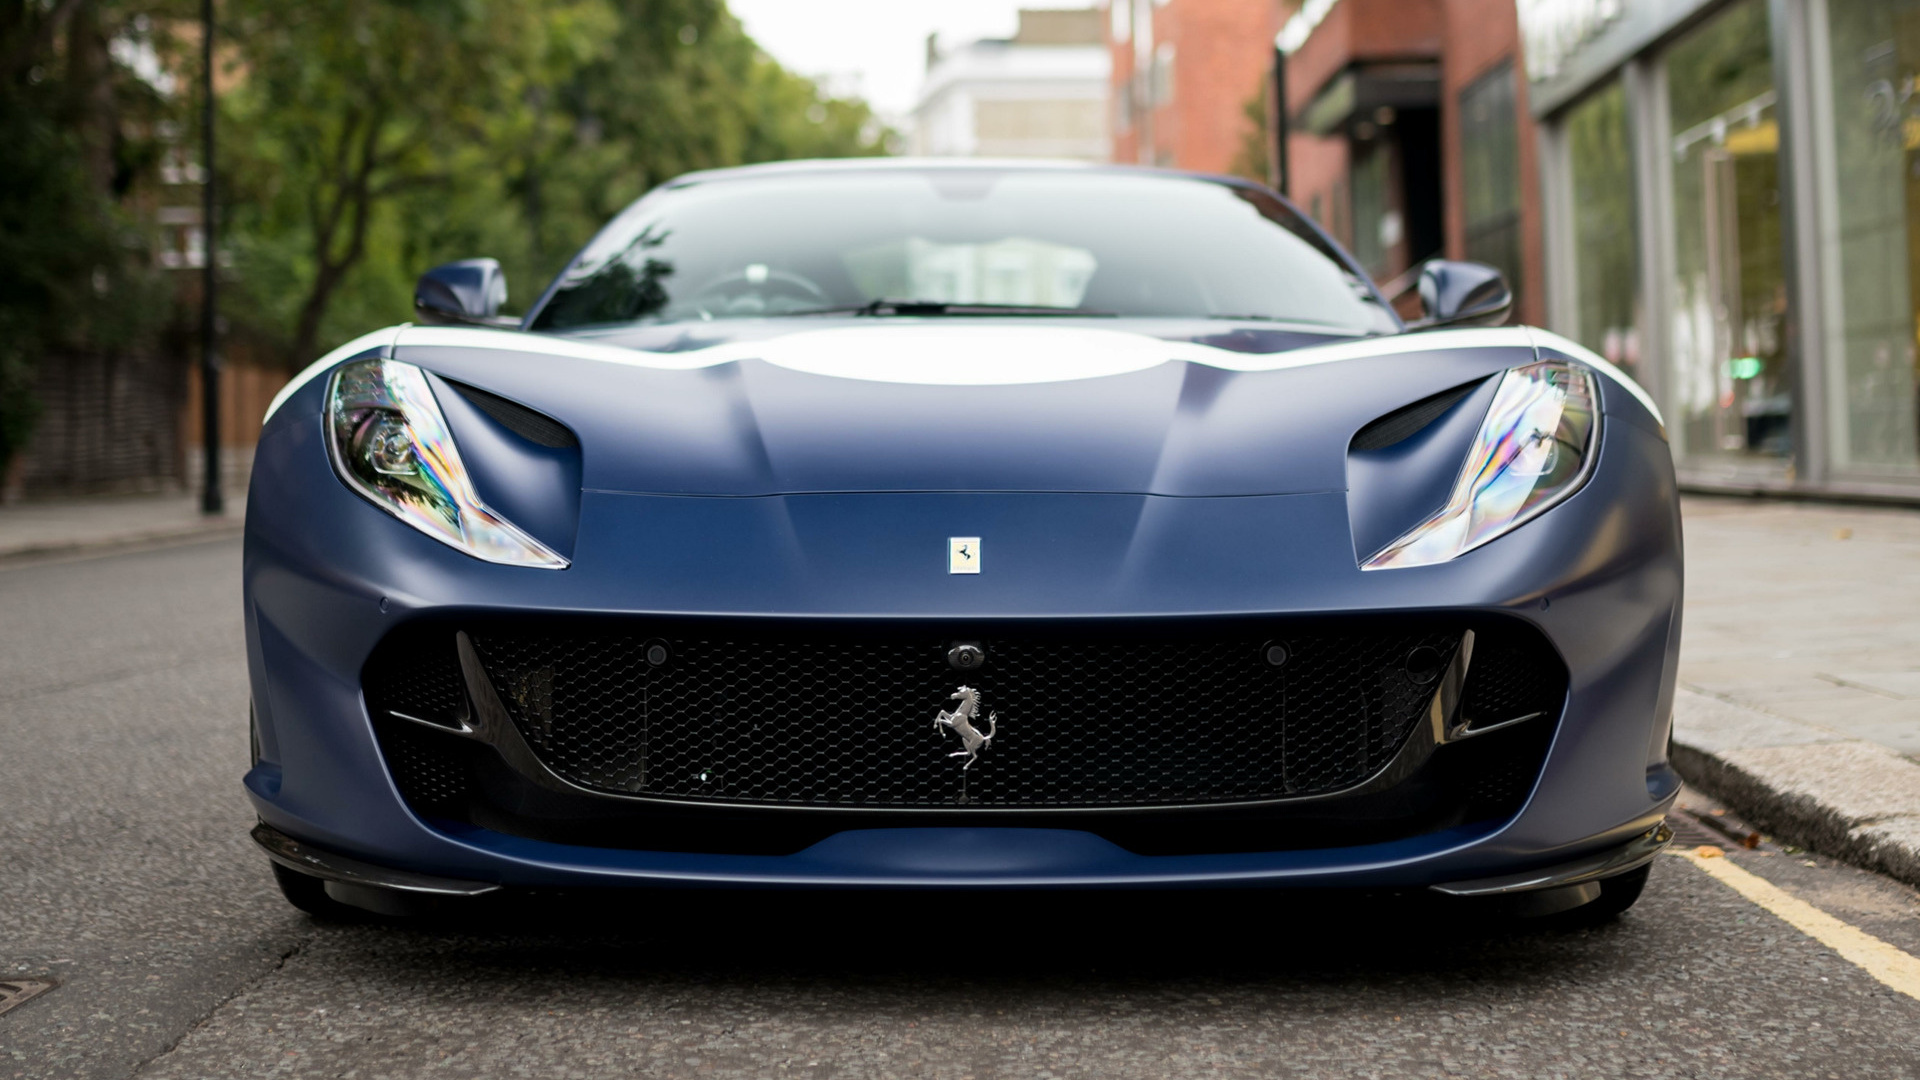 2018 Ferrari 812 Superfast Tailor Made Inspired By Stirling Moss Uk Wallpapers And Hd Images Car Pixel